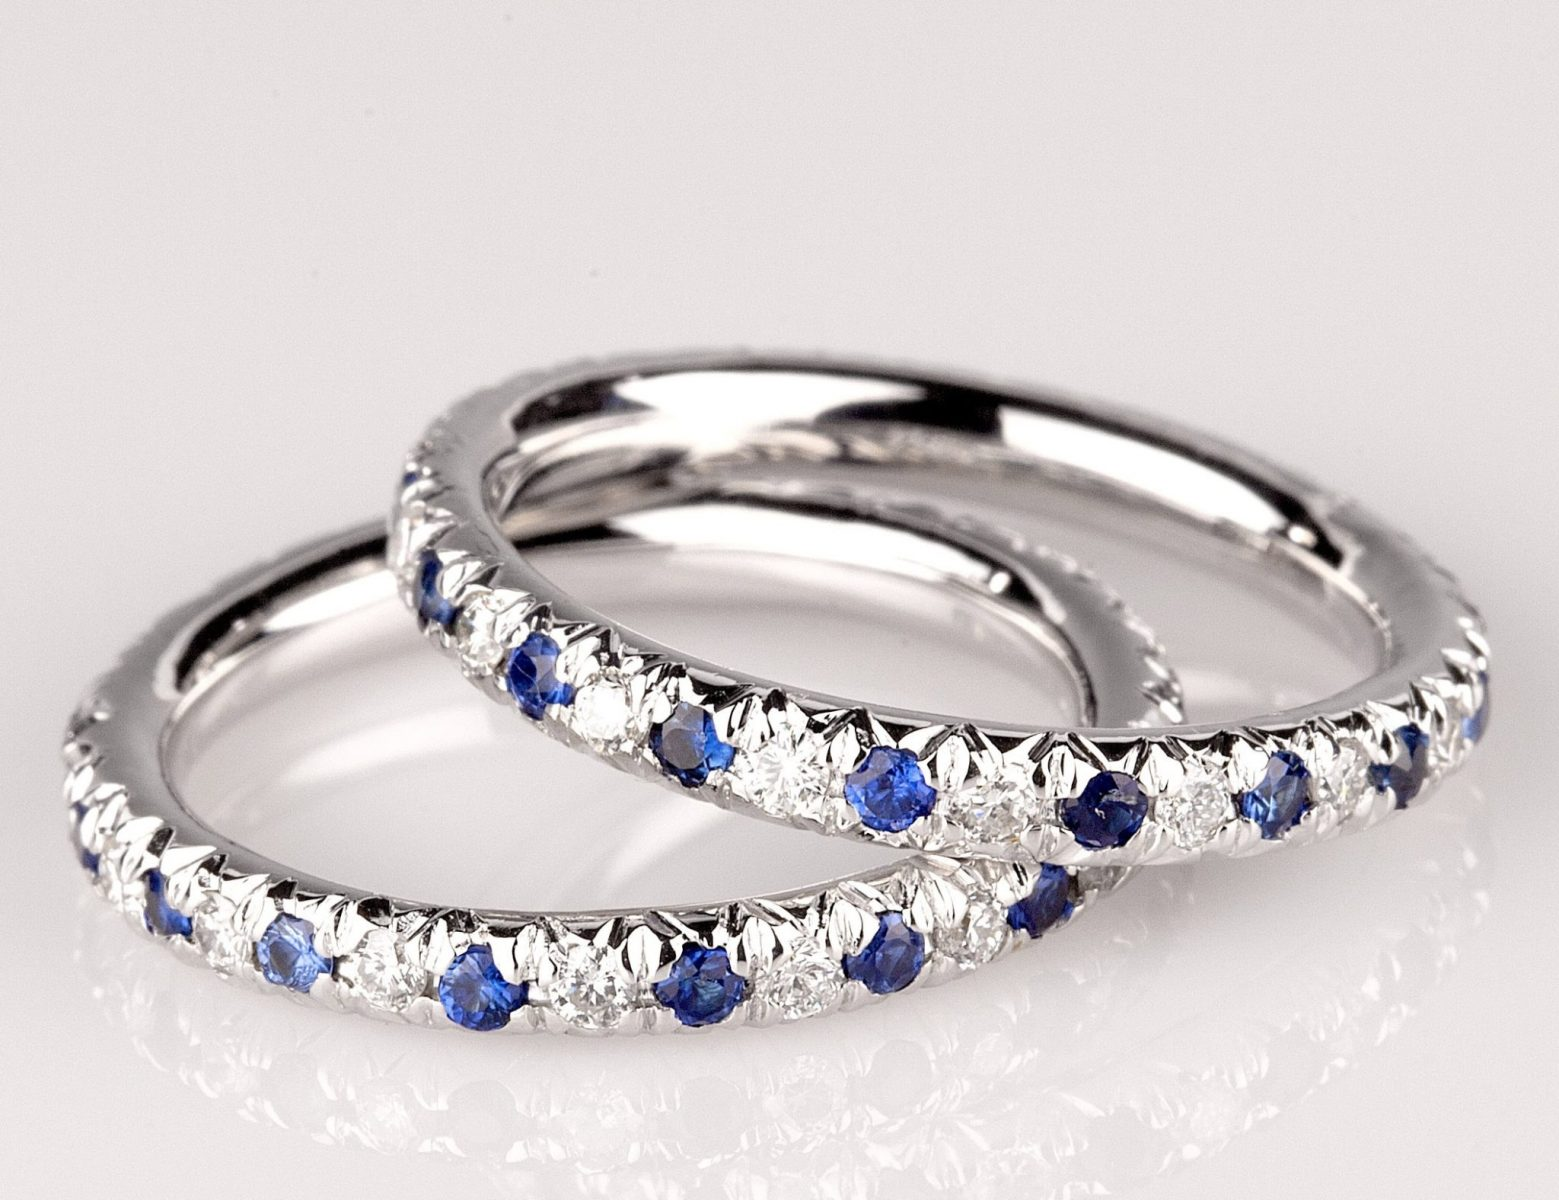 bands love eternity baguette diamond two signature beveled and et band sapphire encircle collections with round